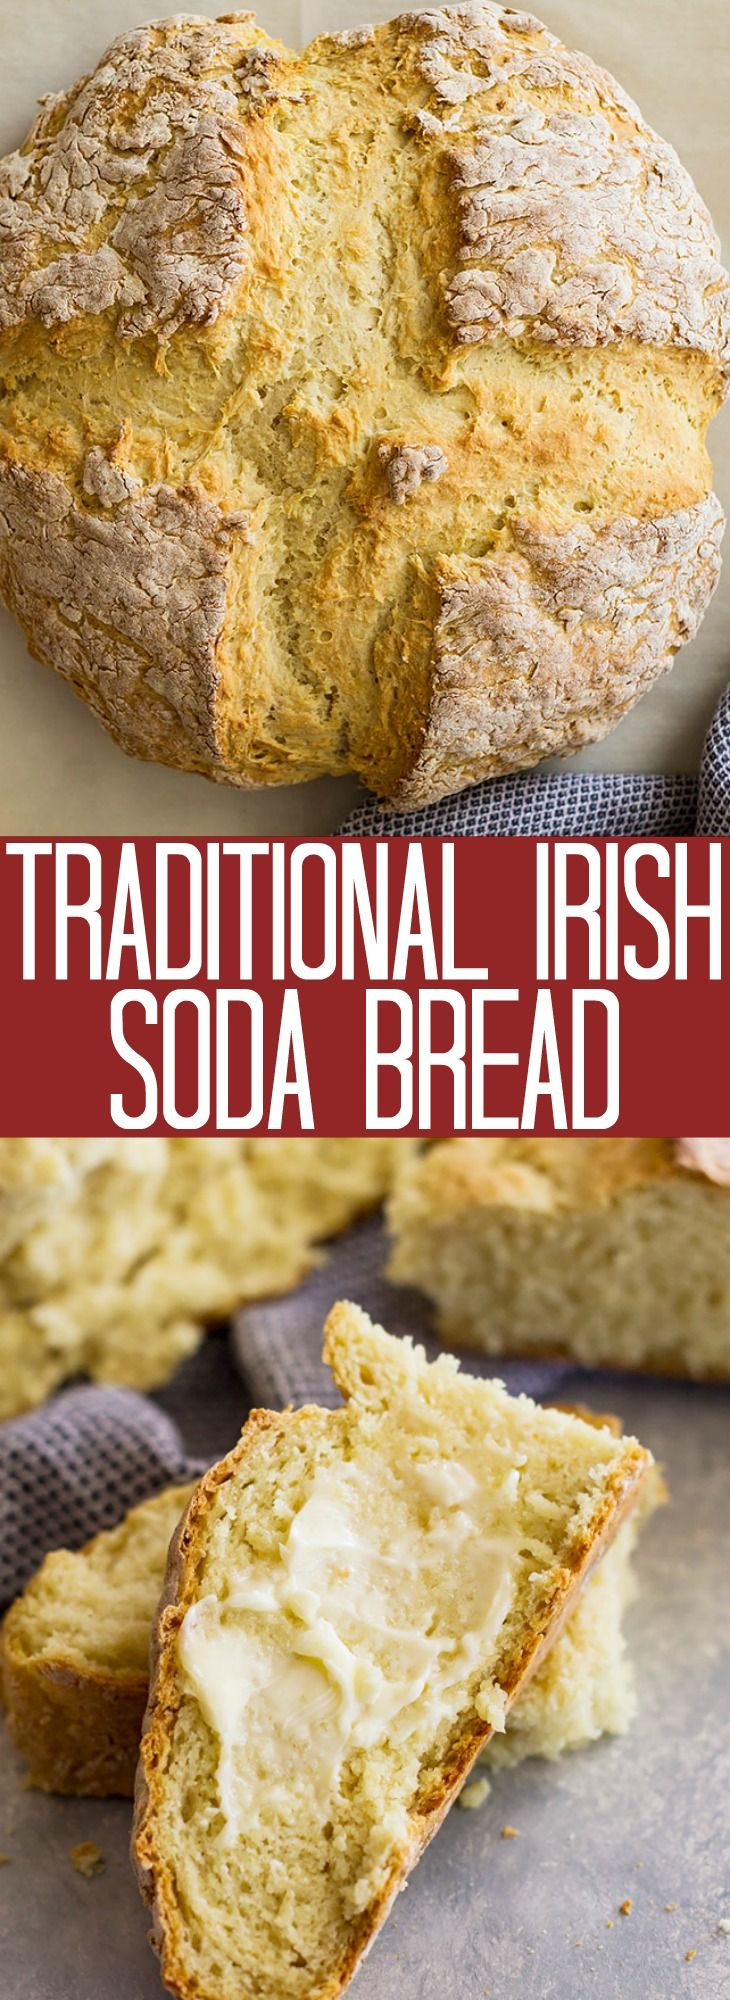 Traditional Irish Soda Bread - this Irish Soda Bread recipe only requires 4 ingredients! It doesn't use yeast so it's simple to make!